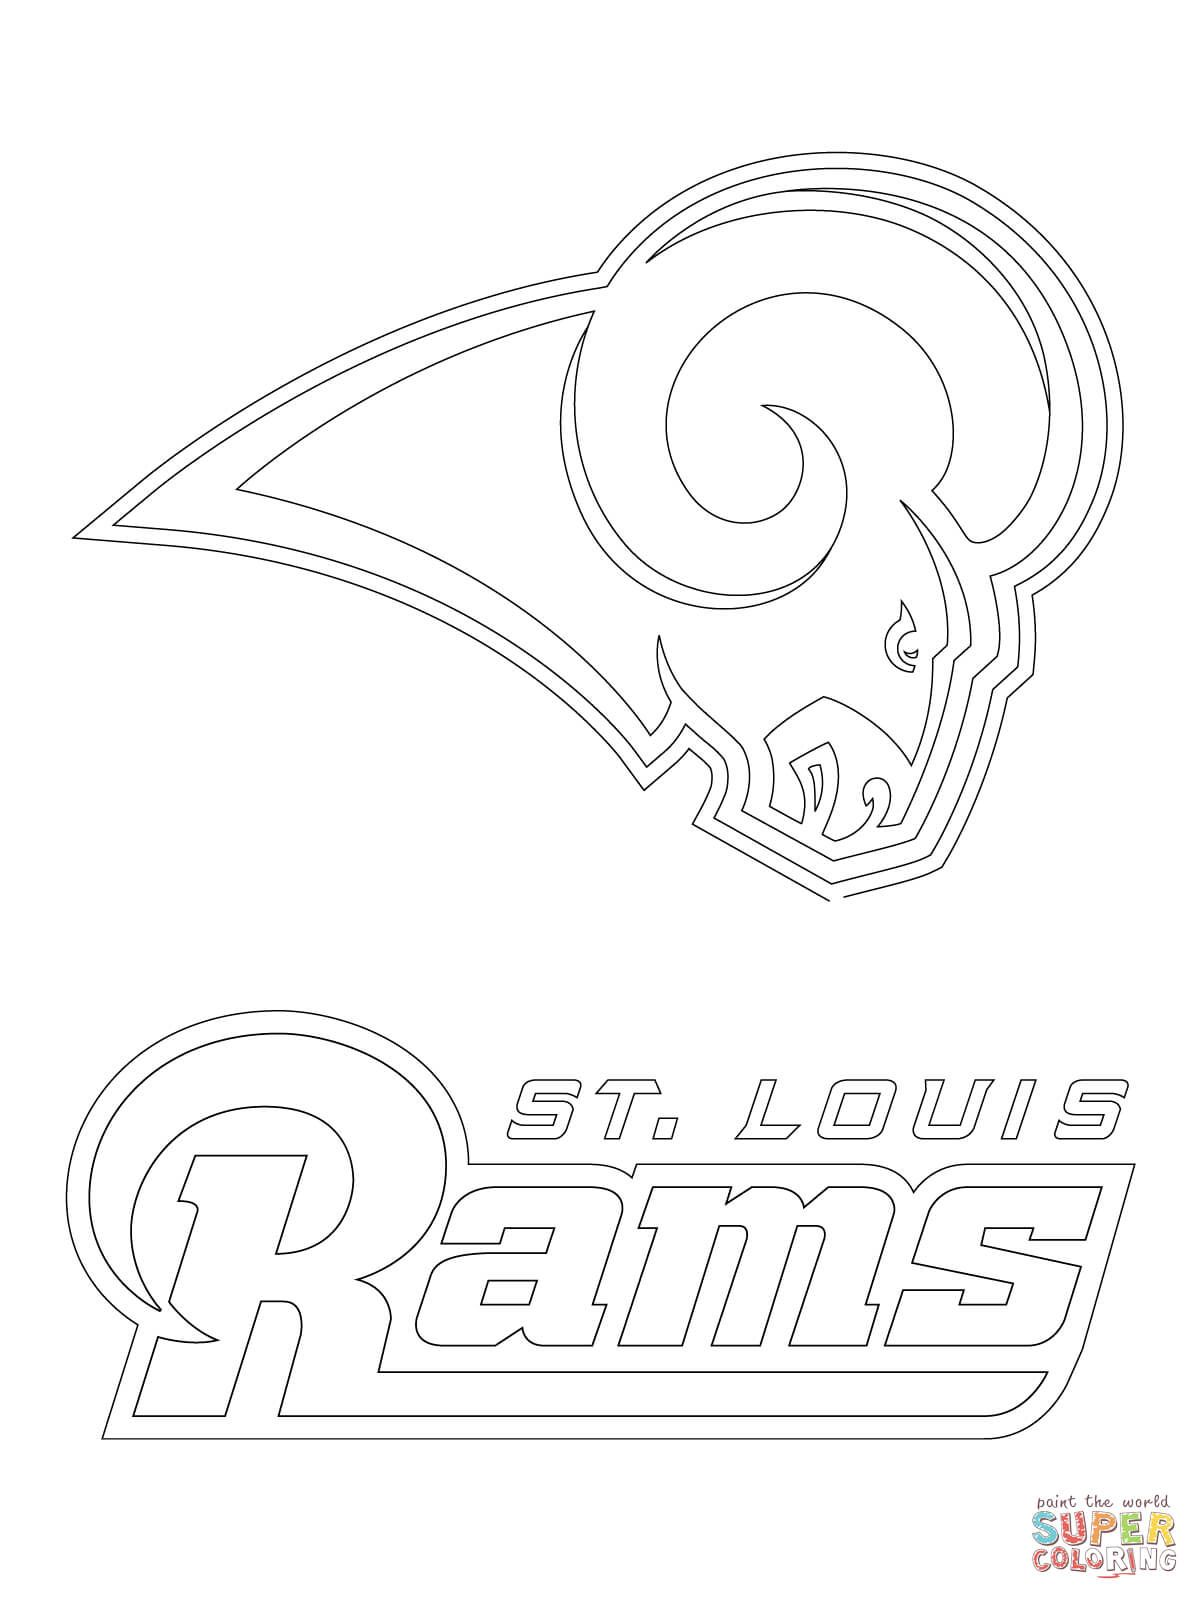 St Louis Rams Logo Coloring Page